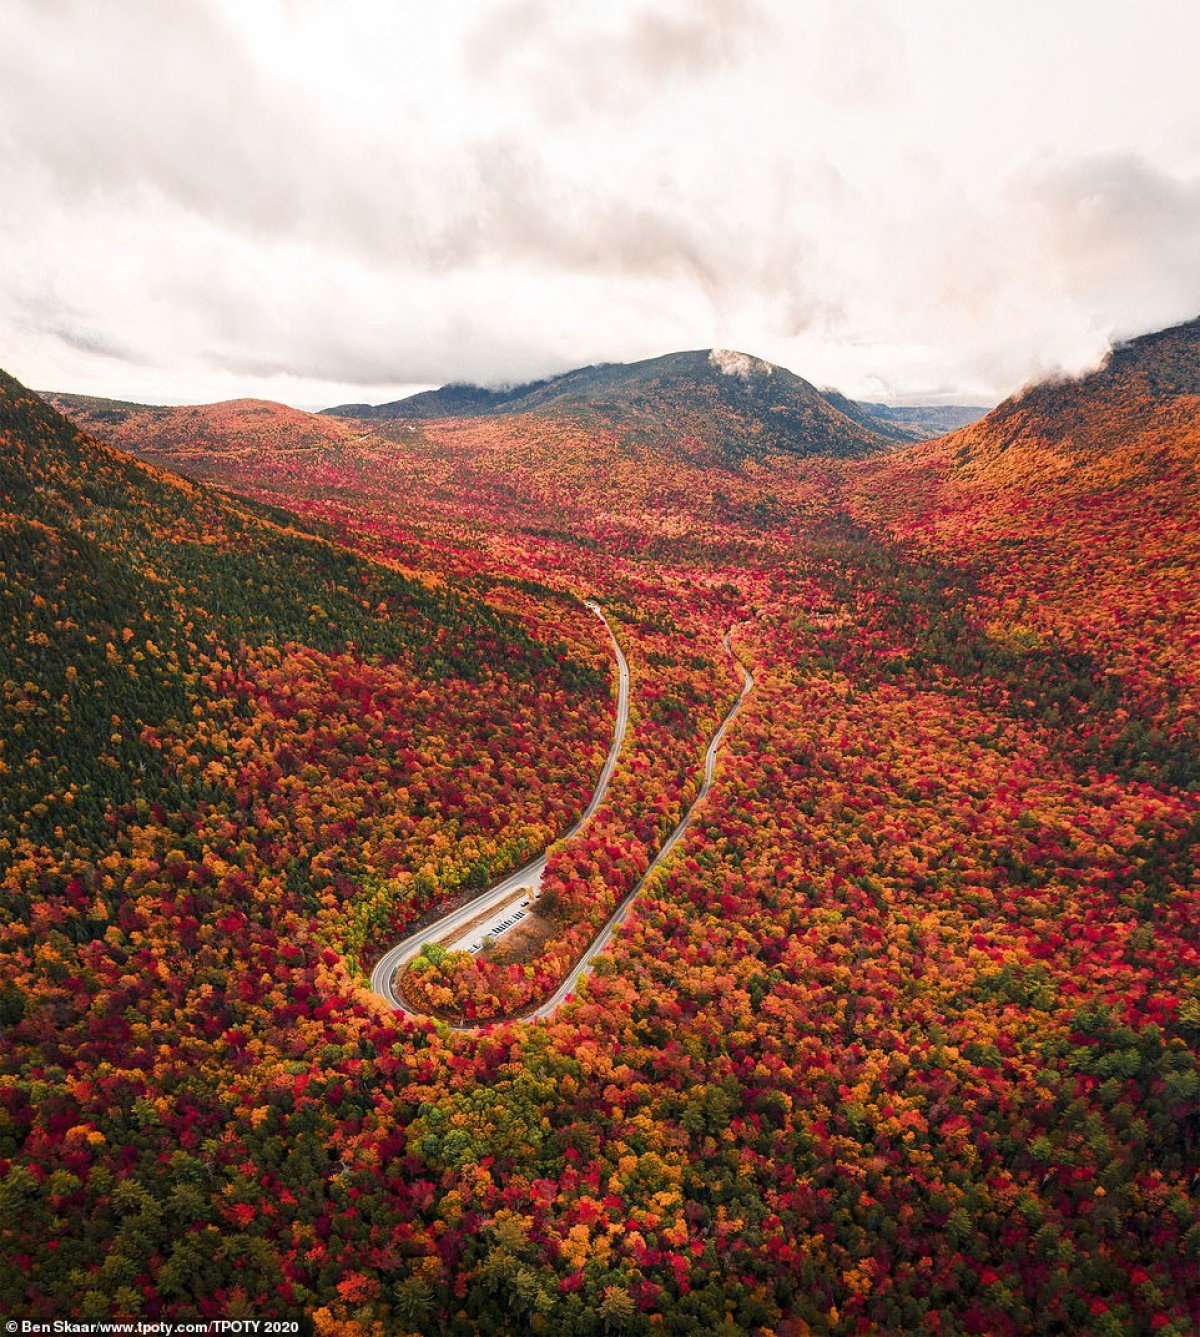 17-year-old Ben Skaar wins the young travel photographer of the year with a photo showing a beautiful landscape in the autumn in New Hampshire in the US.